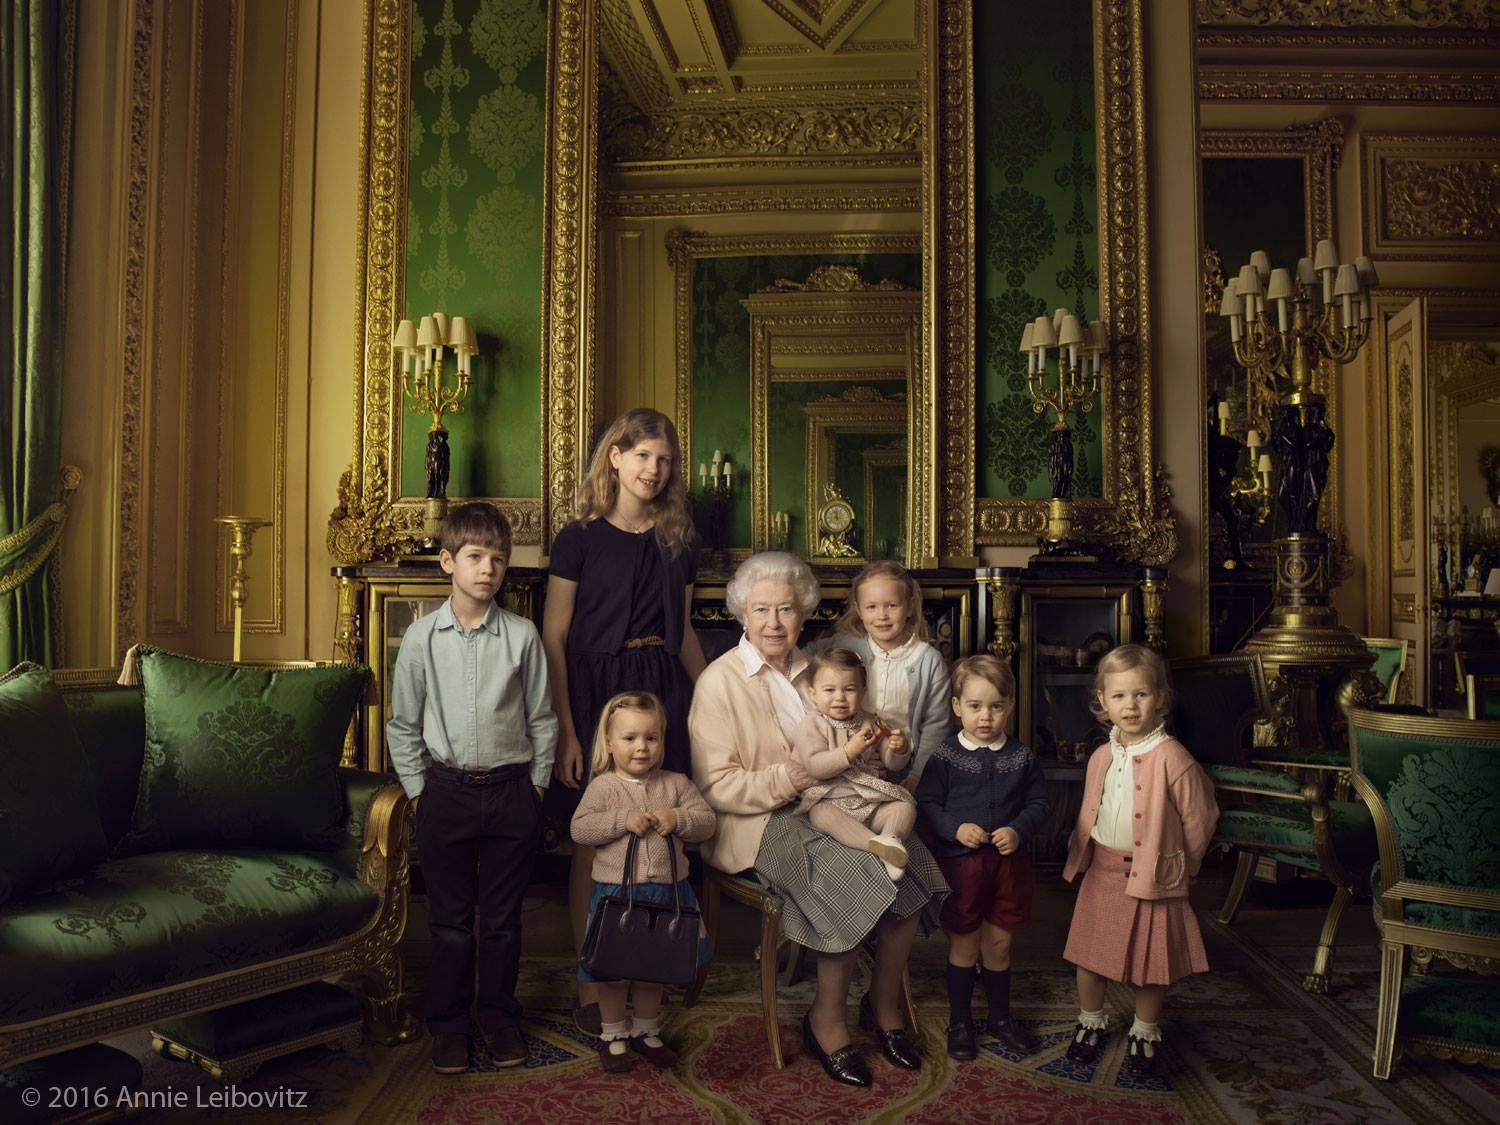 This photo of the Queen with Princess Charlotte is breathtakingly adorable